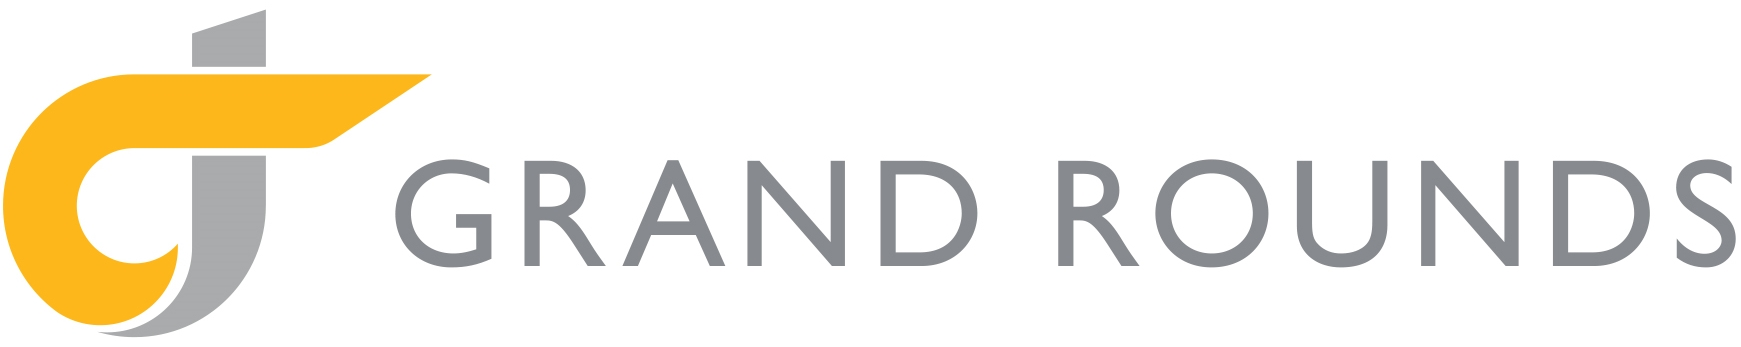 Grand-Rounds-Logo-Lockup-Horizontal-Outlined-2-Color.jpg